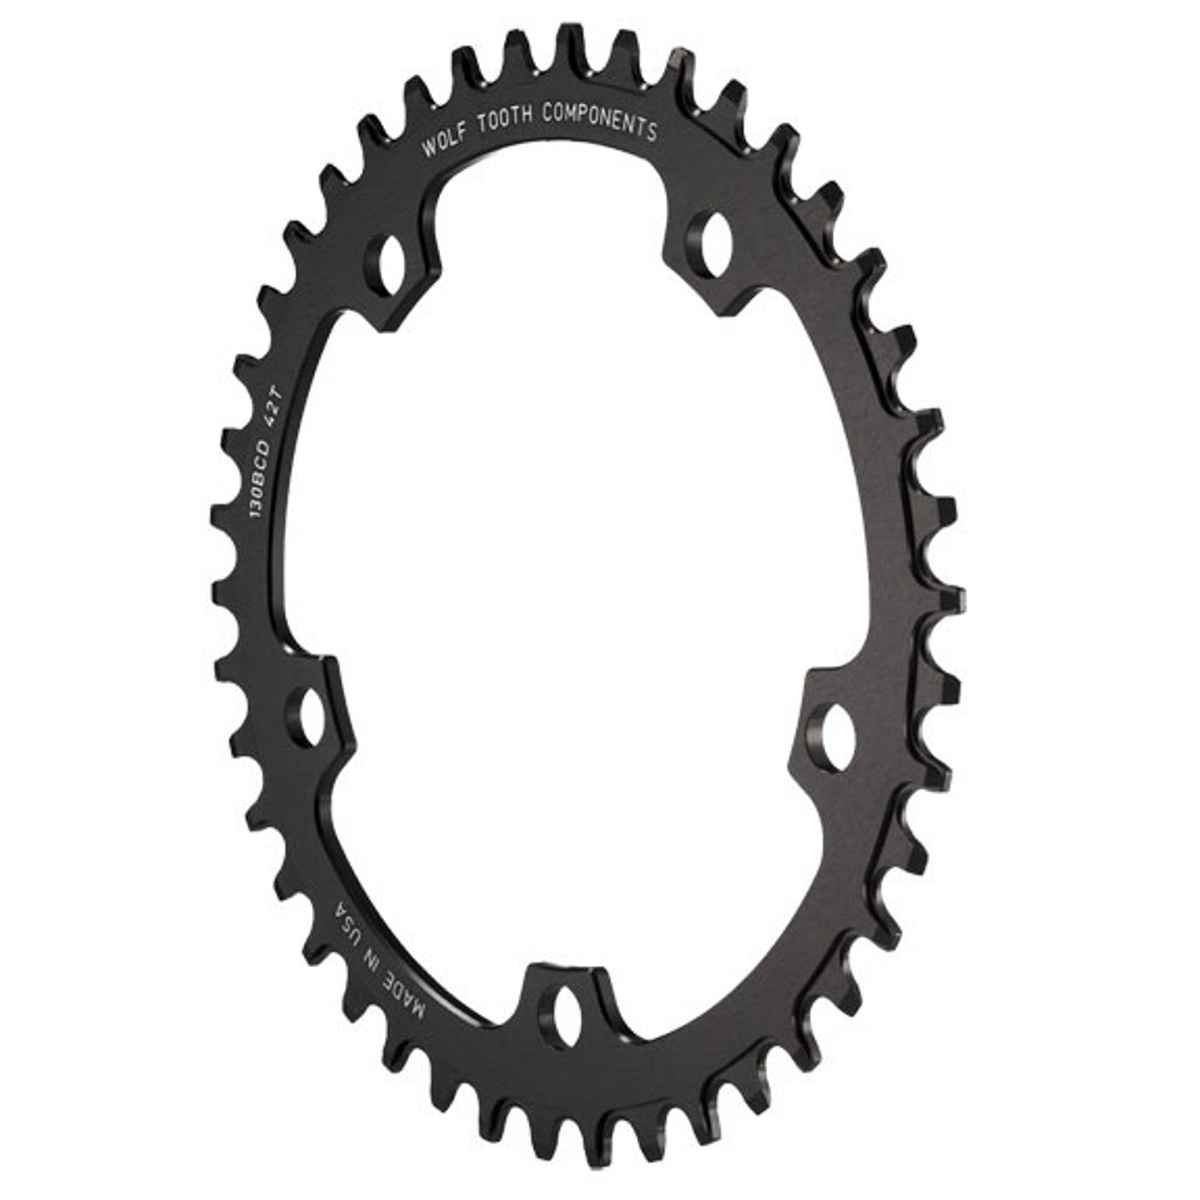 Wolf Tooth Road &シクロクロスドロップ停止Chainring B00SJ9MMSW 34t|110BCD 5-ボルト 34t